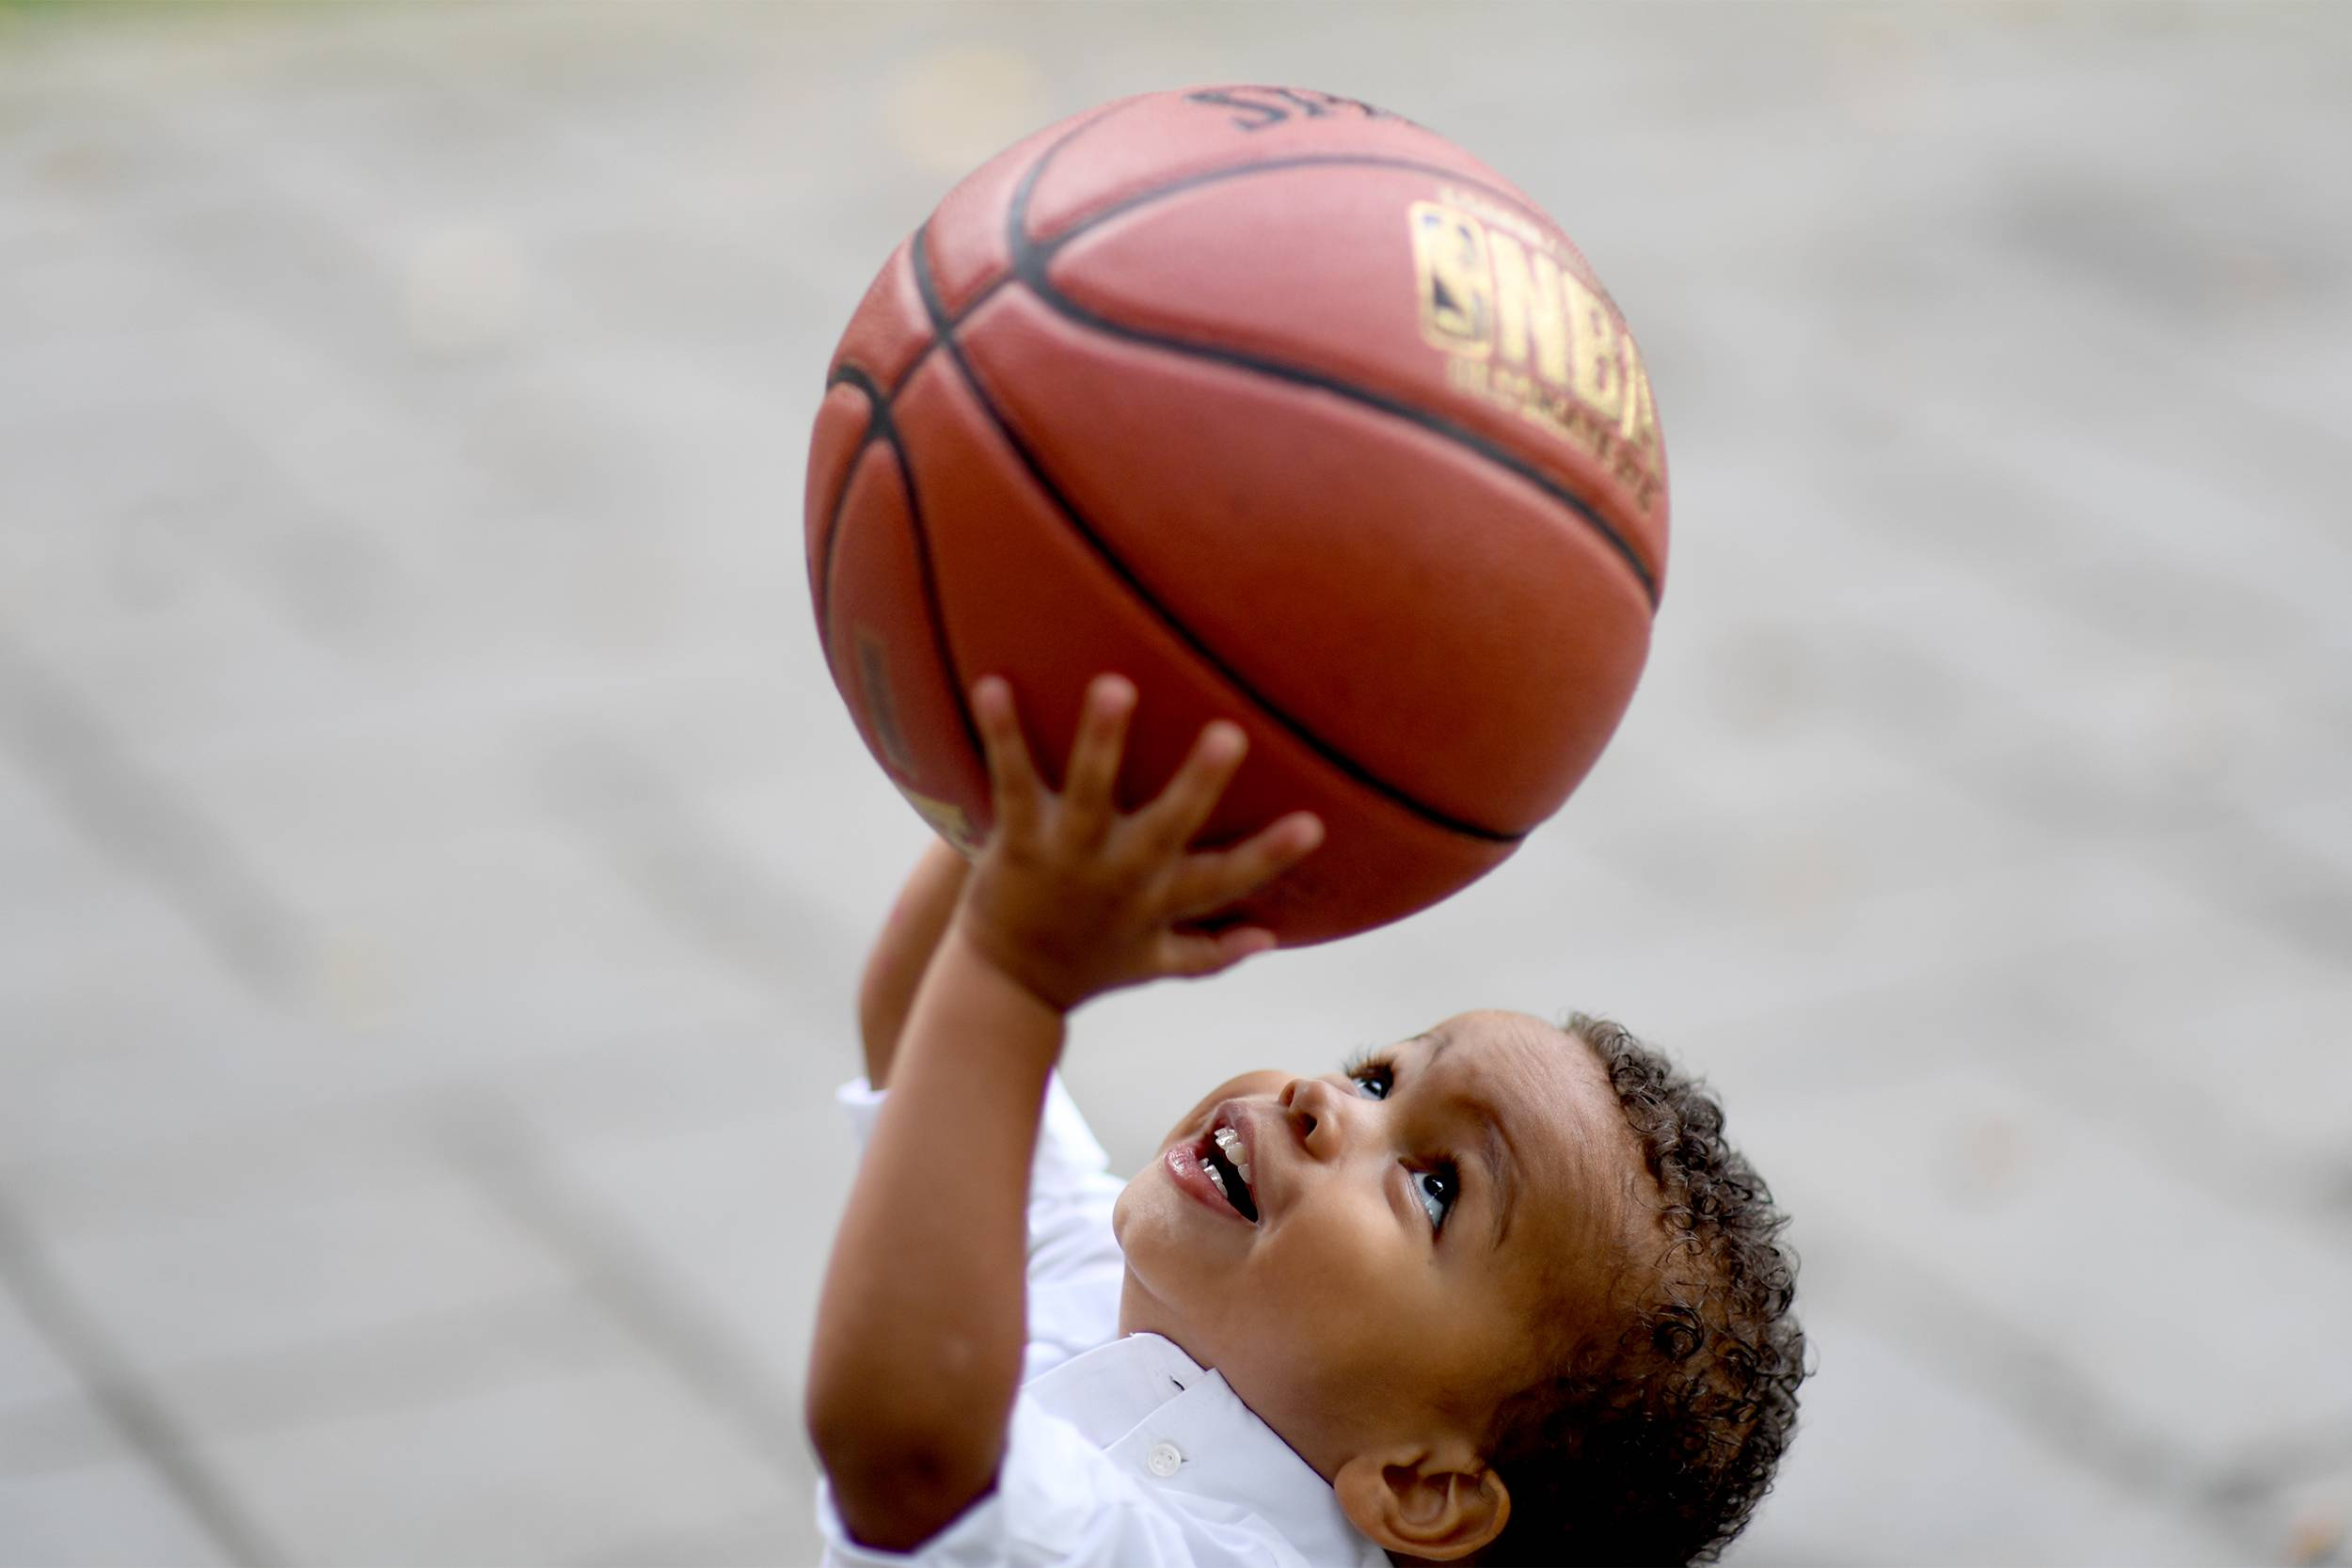 Tre with basketball for website_CG_3190.jpg